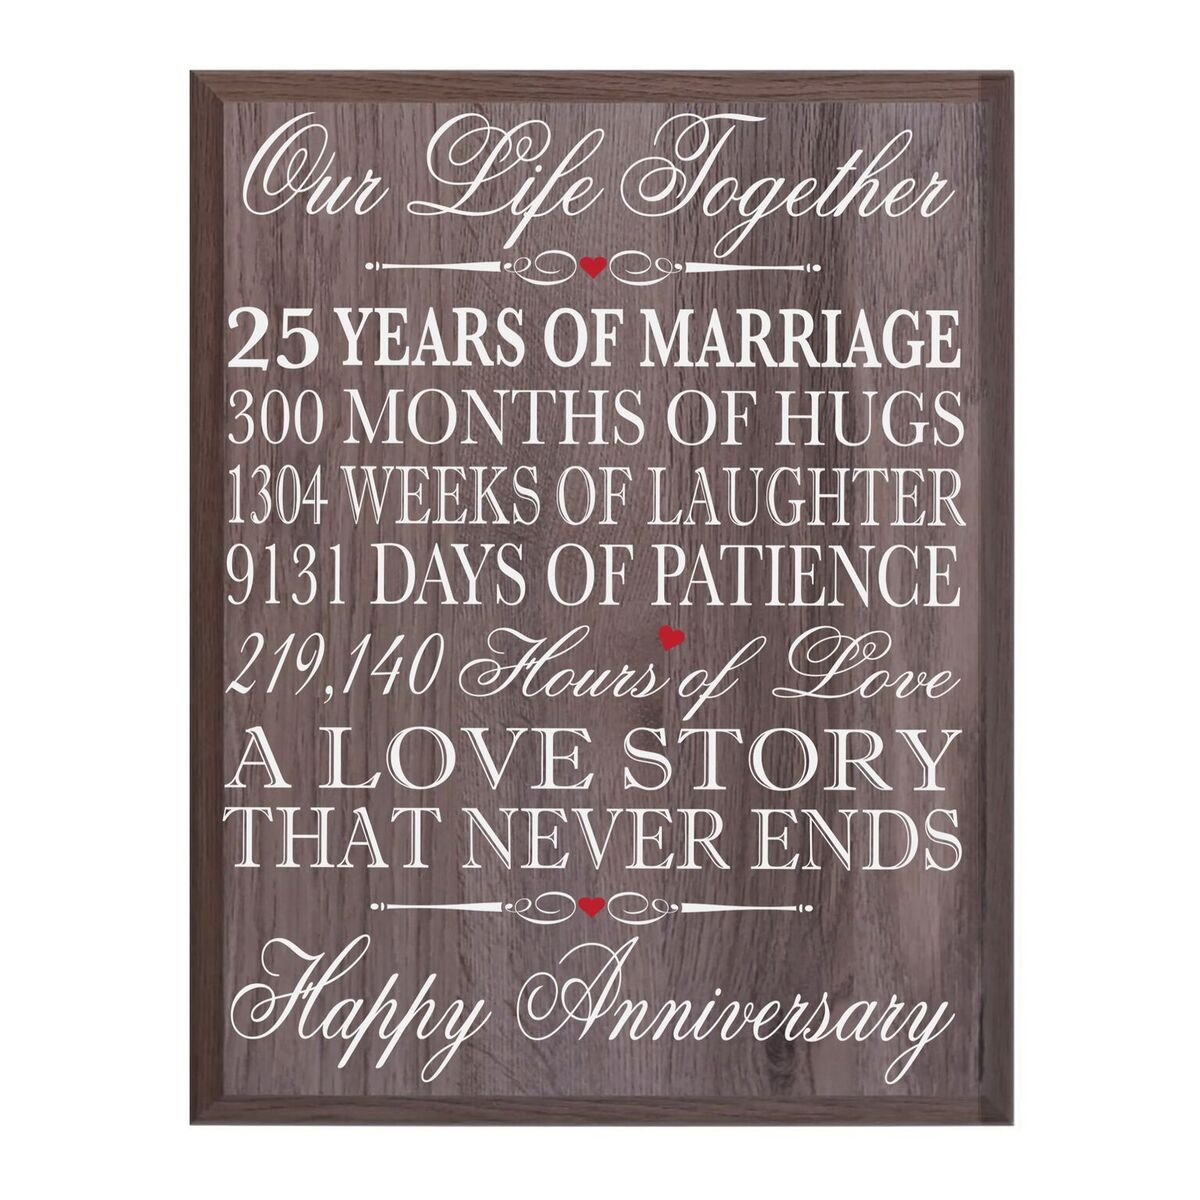 LifeSong Milestones 25th Wedding Anniversary Wall Plaque Gifts for Couple, 25th for Her,25th Wedding Silver Ideas for Him 12'' W X 15'' H Wall Plaque (Salt Oak)